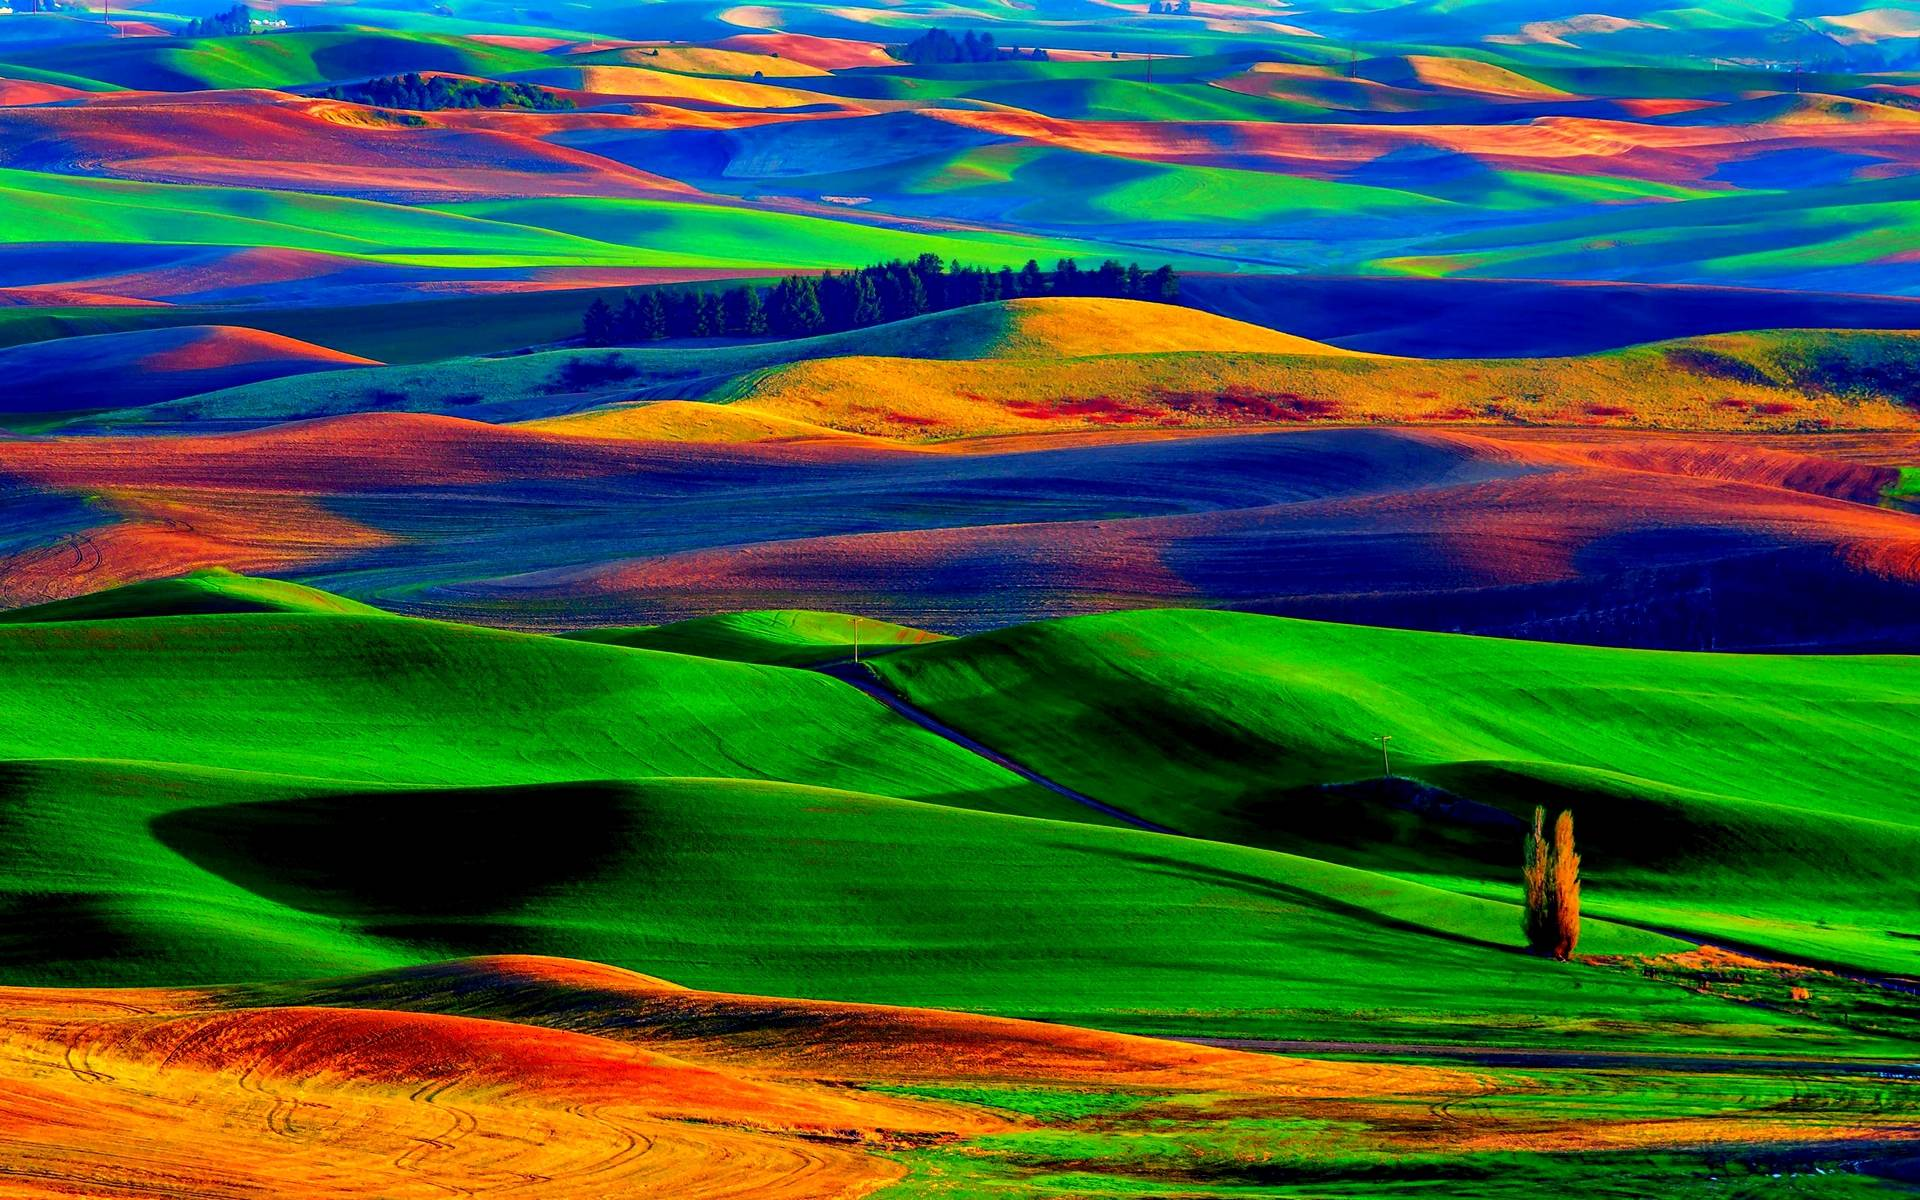 Colorful Nature Wallpapers - Wallpaper Cave